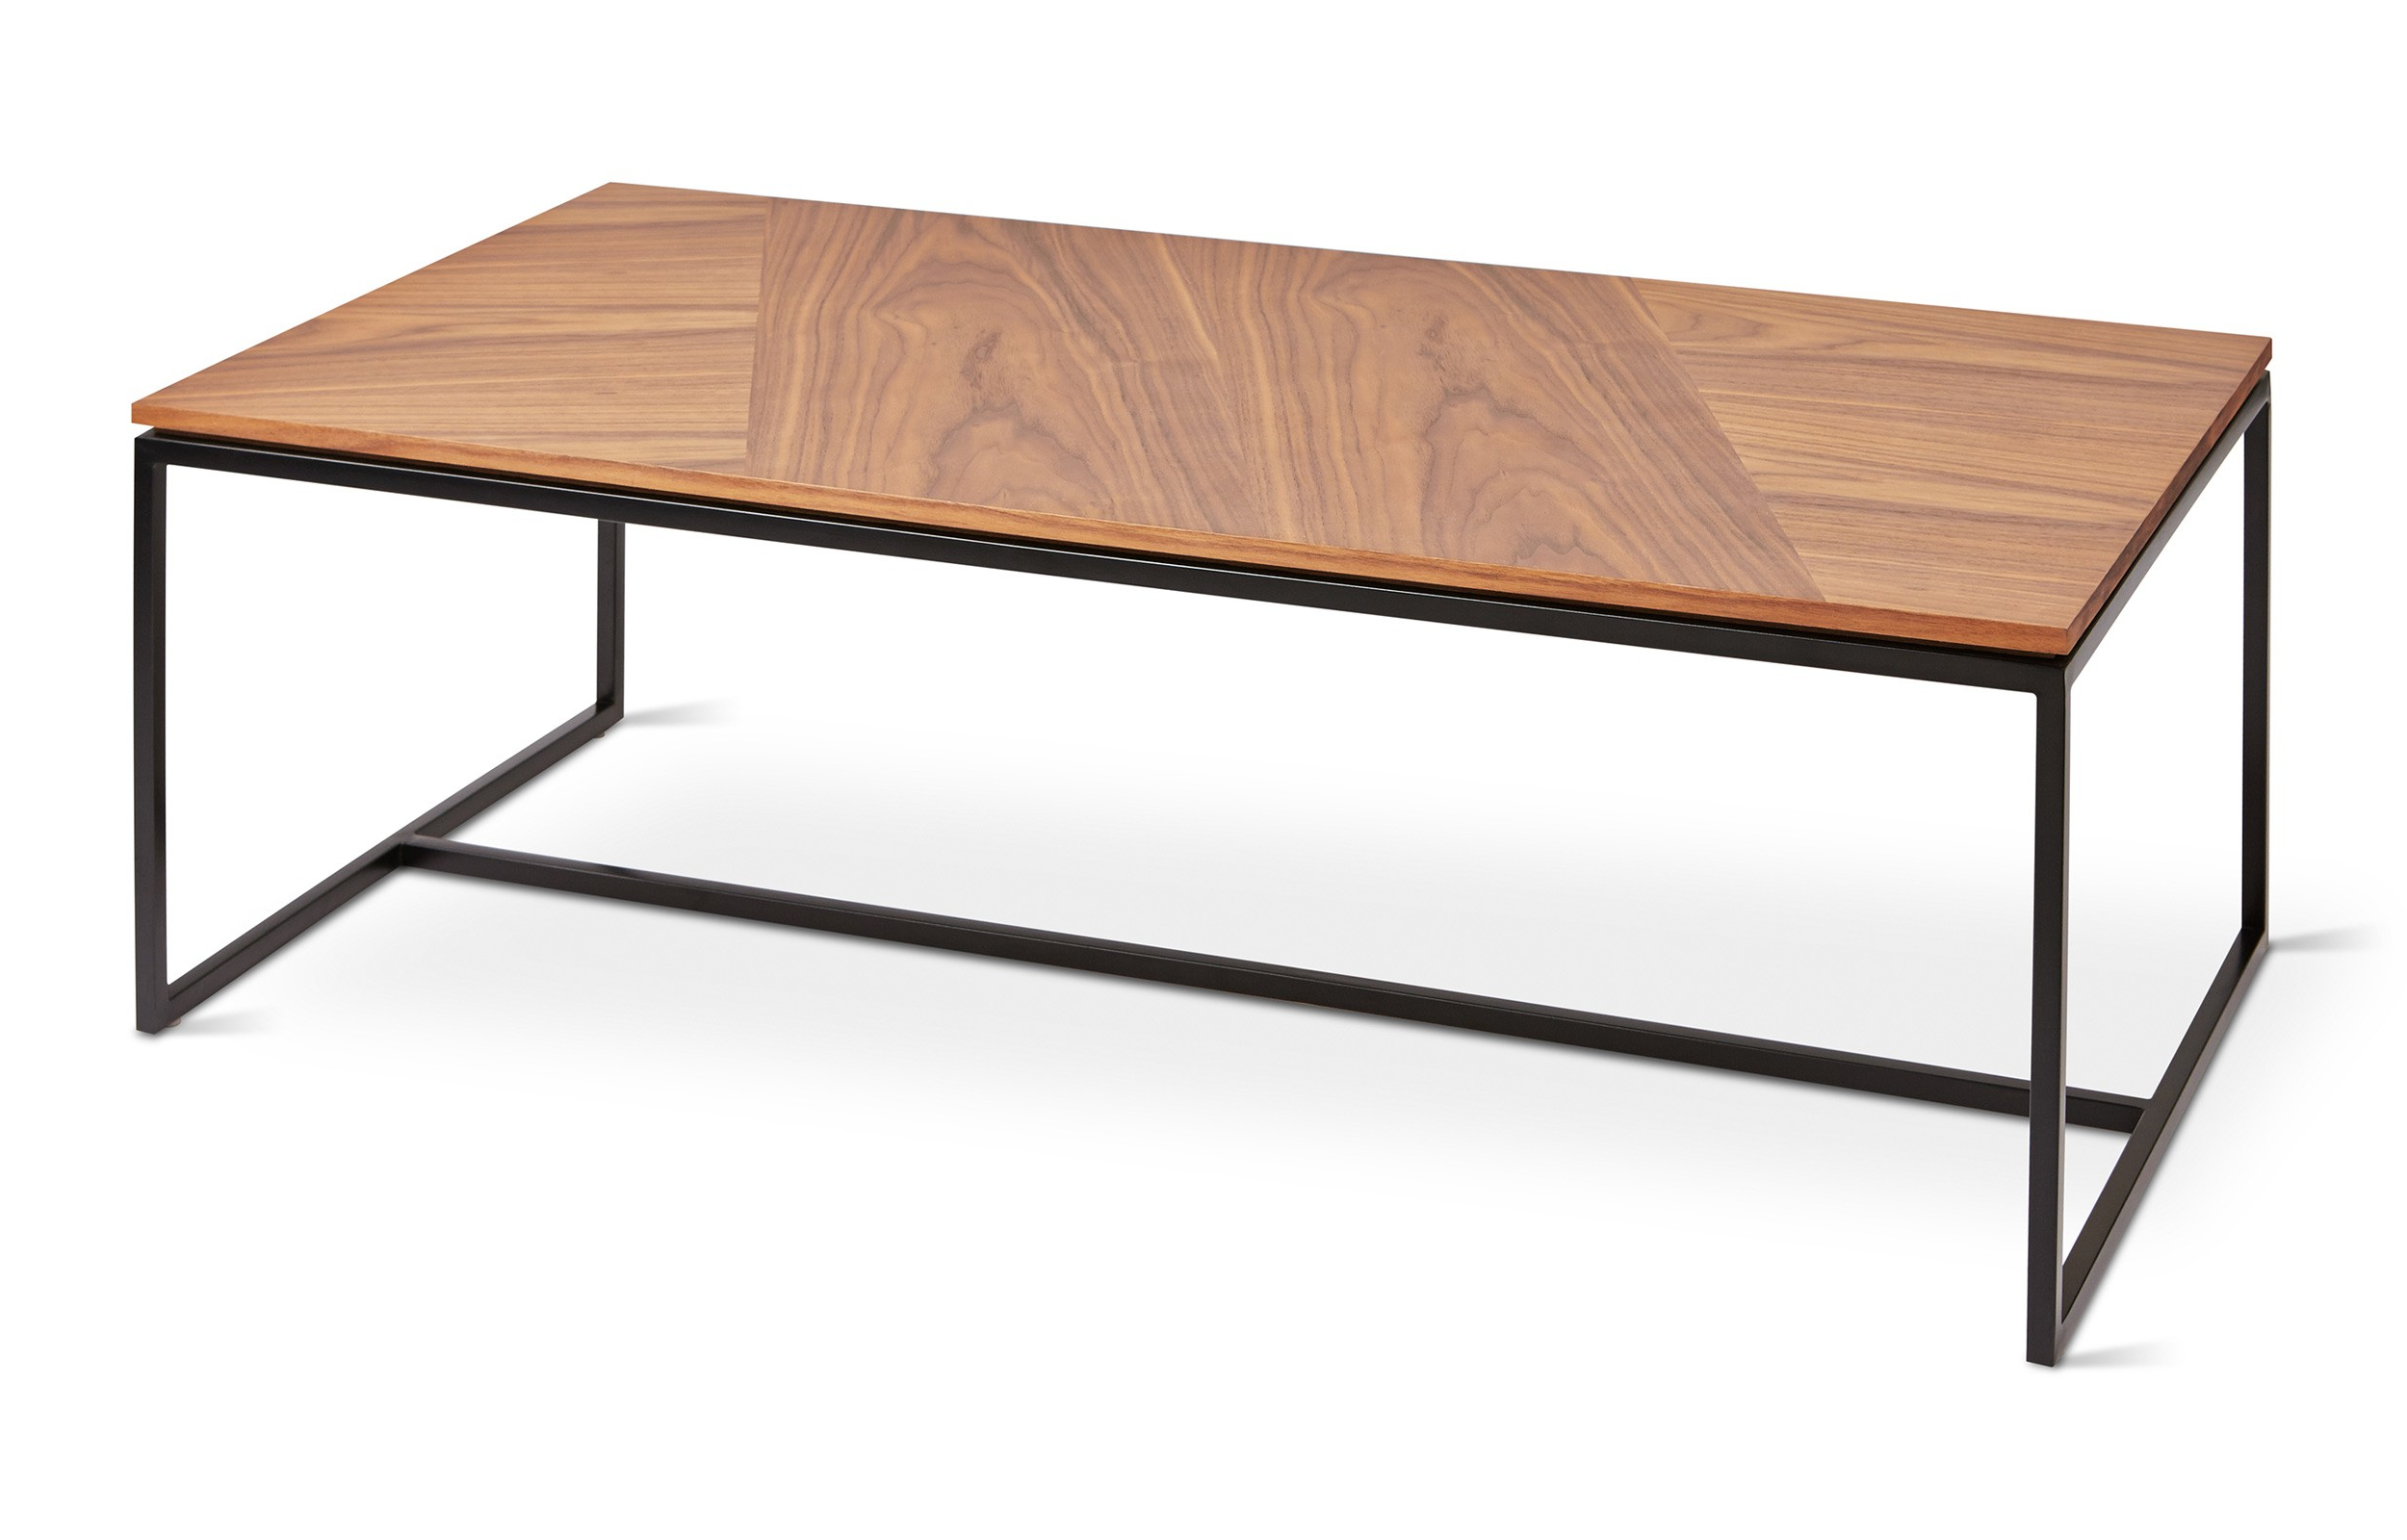 Viesso Regarding Tobias Media Console Tables (View 6 of 20)